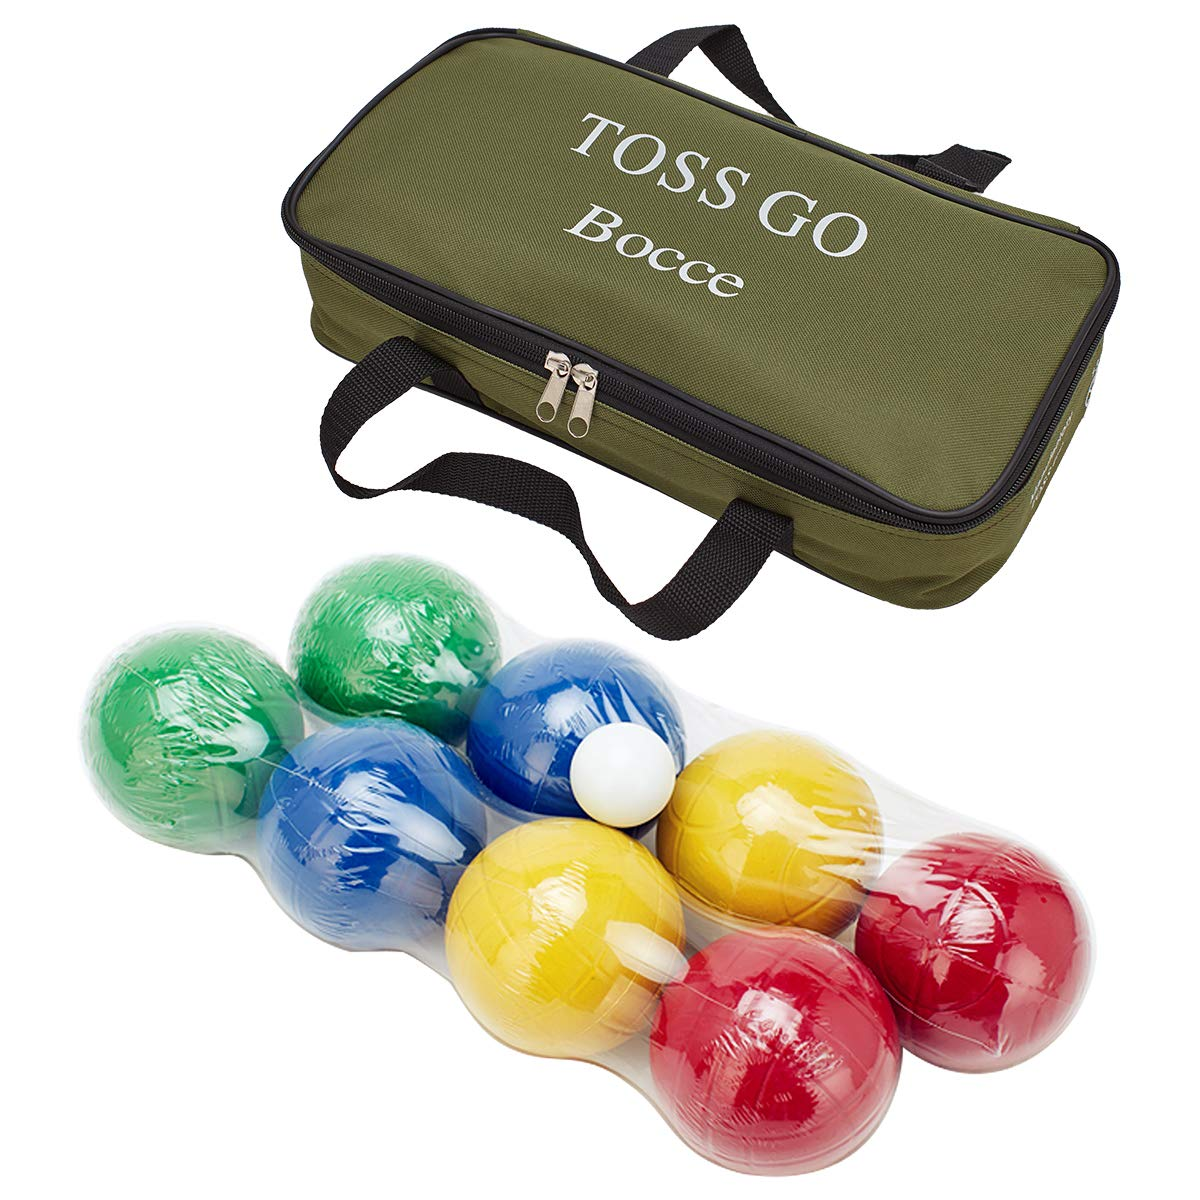 LAWN TIME Toss Go Bocce Set - Recreational Plastic 90mm Bocce Ball Set with Carrier Bag - Classic Outdoor Toss Game